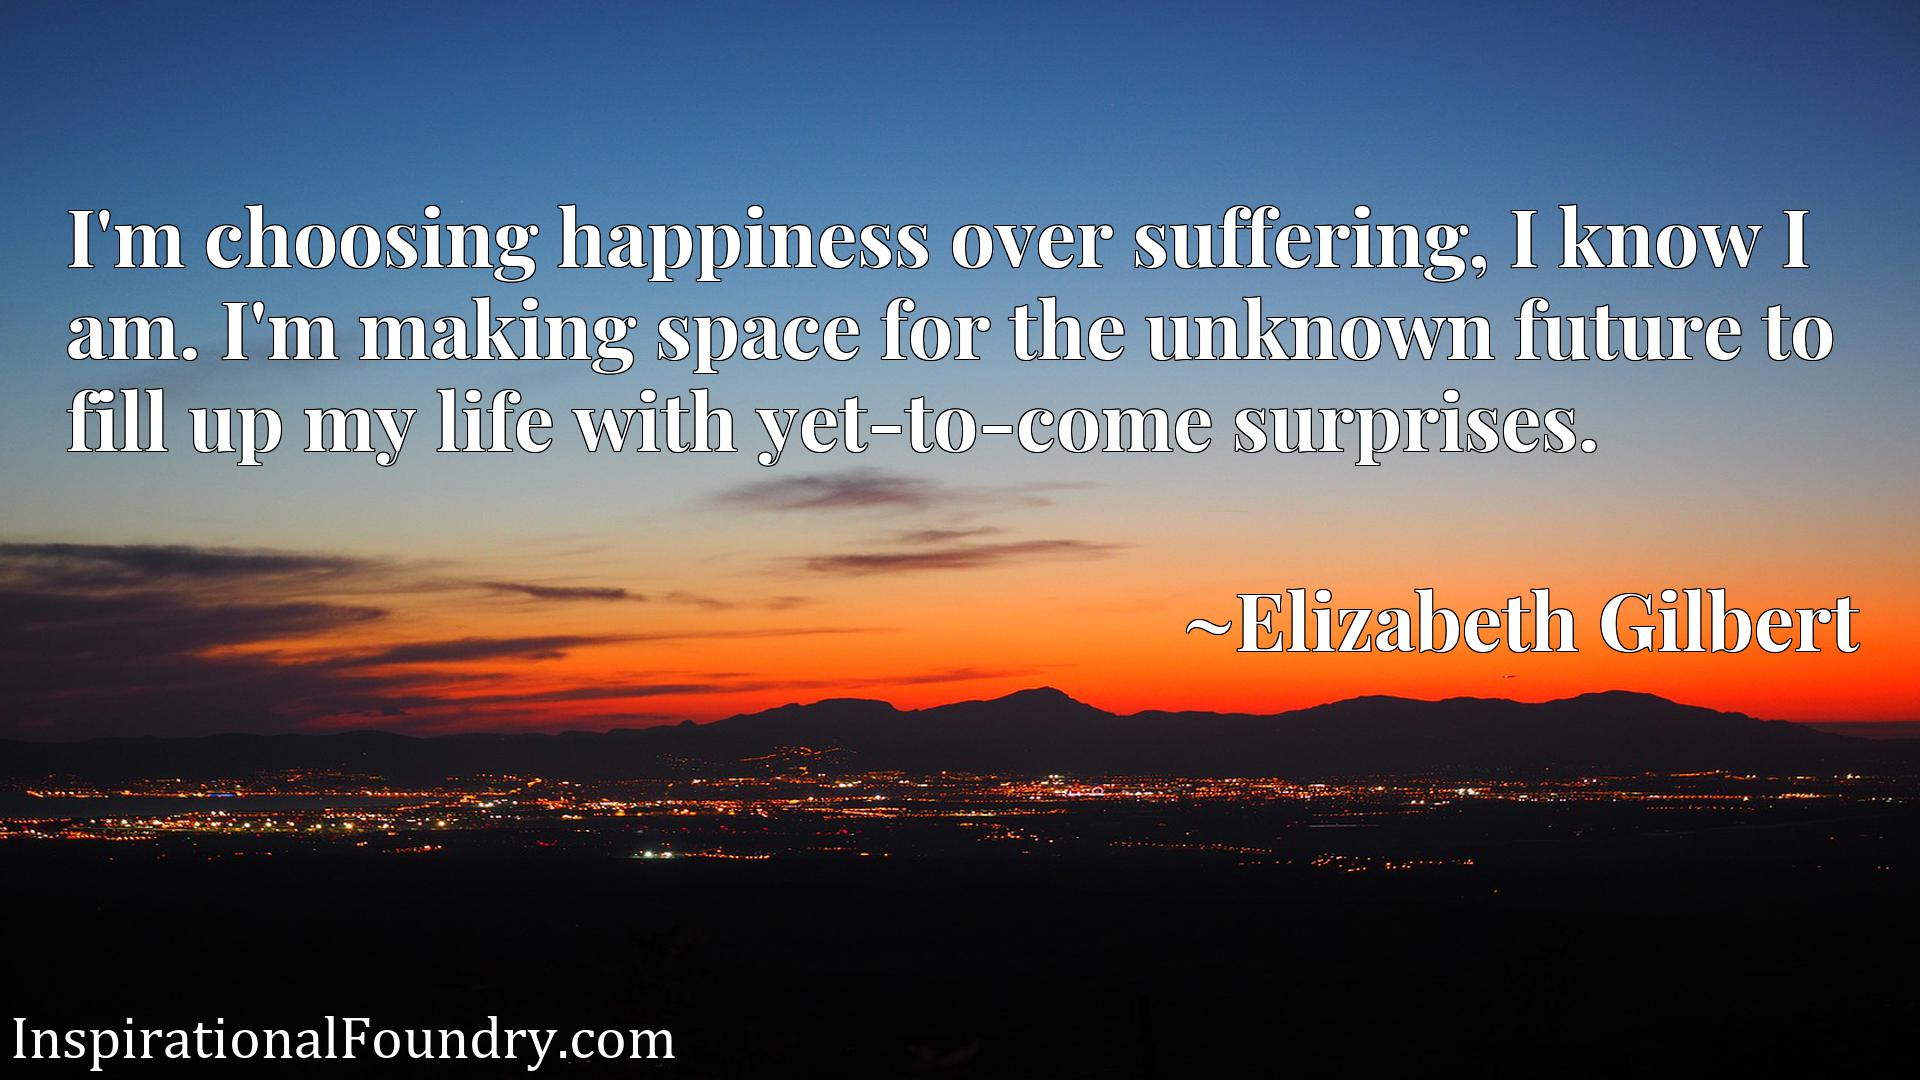 Quote Picture :I'm choosing happiness over suffering, I know I am. I'm making space for the unknown future to fill up my life with yet-to-come surprises.